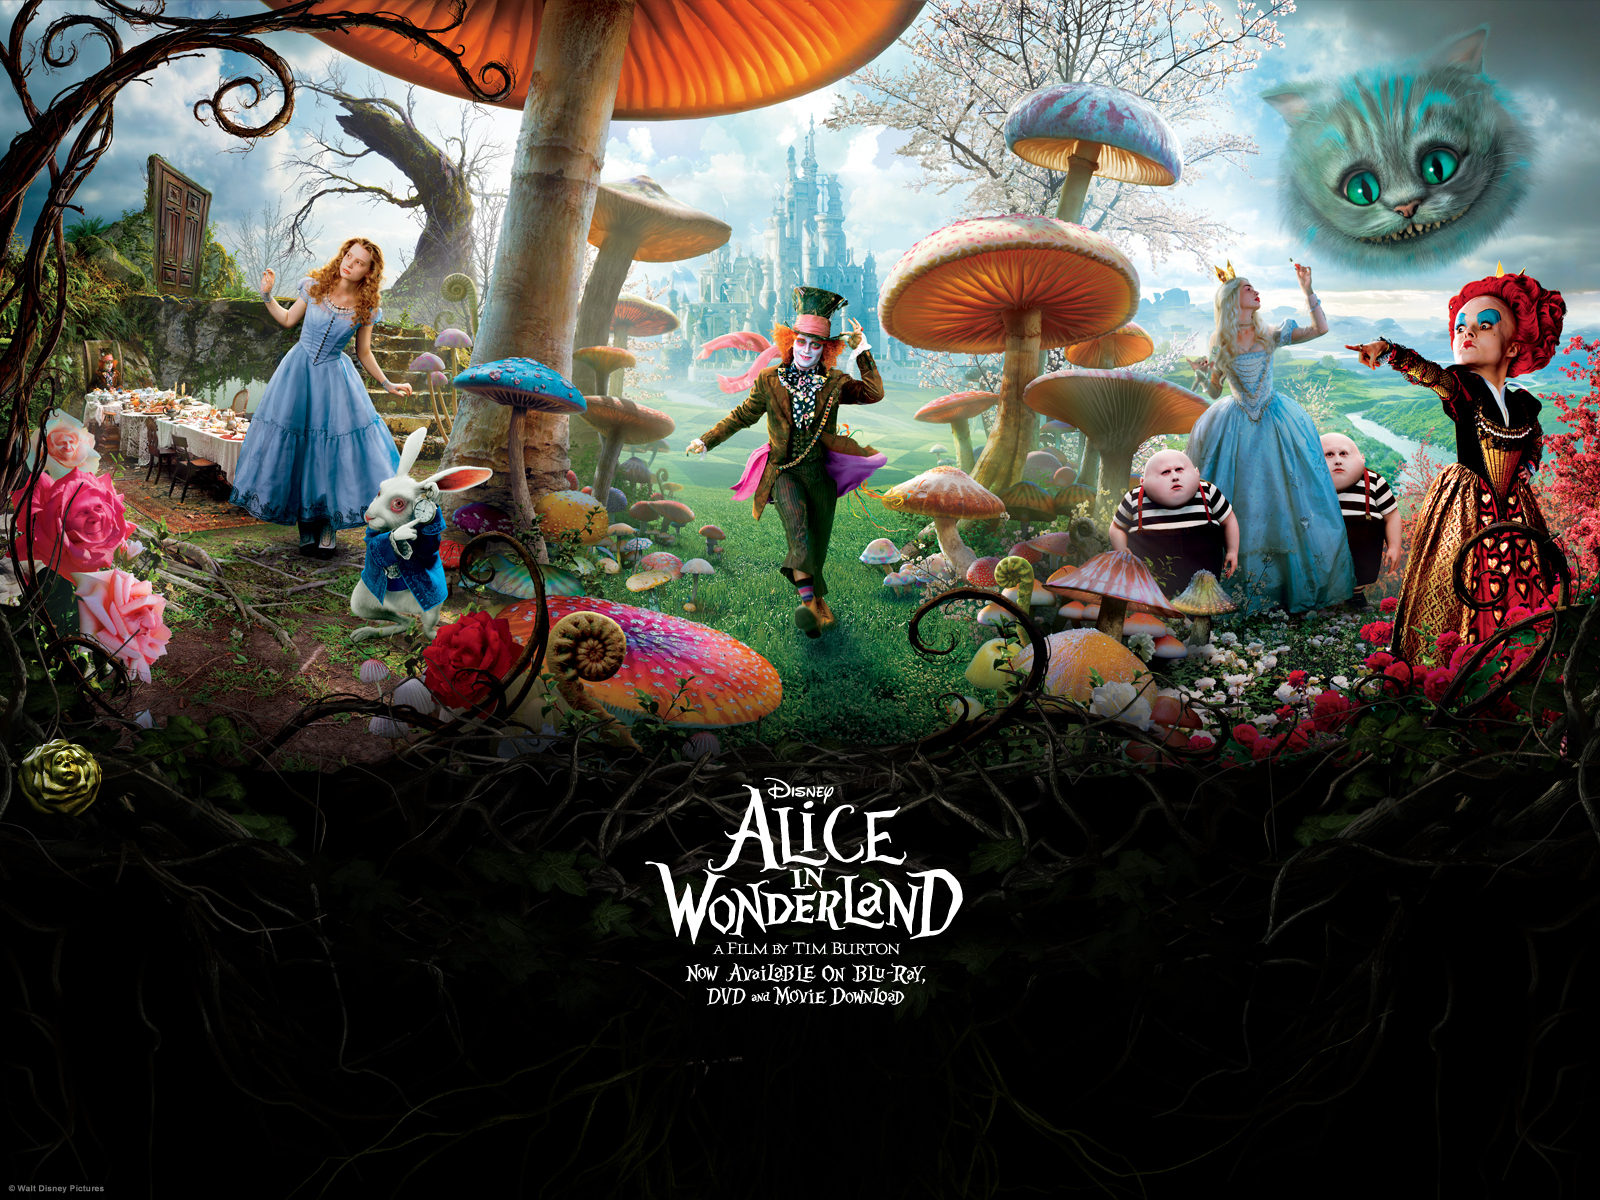 Alice in Wonderland fond d'écran